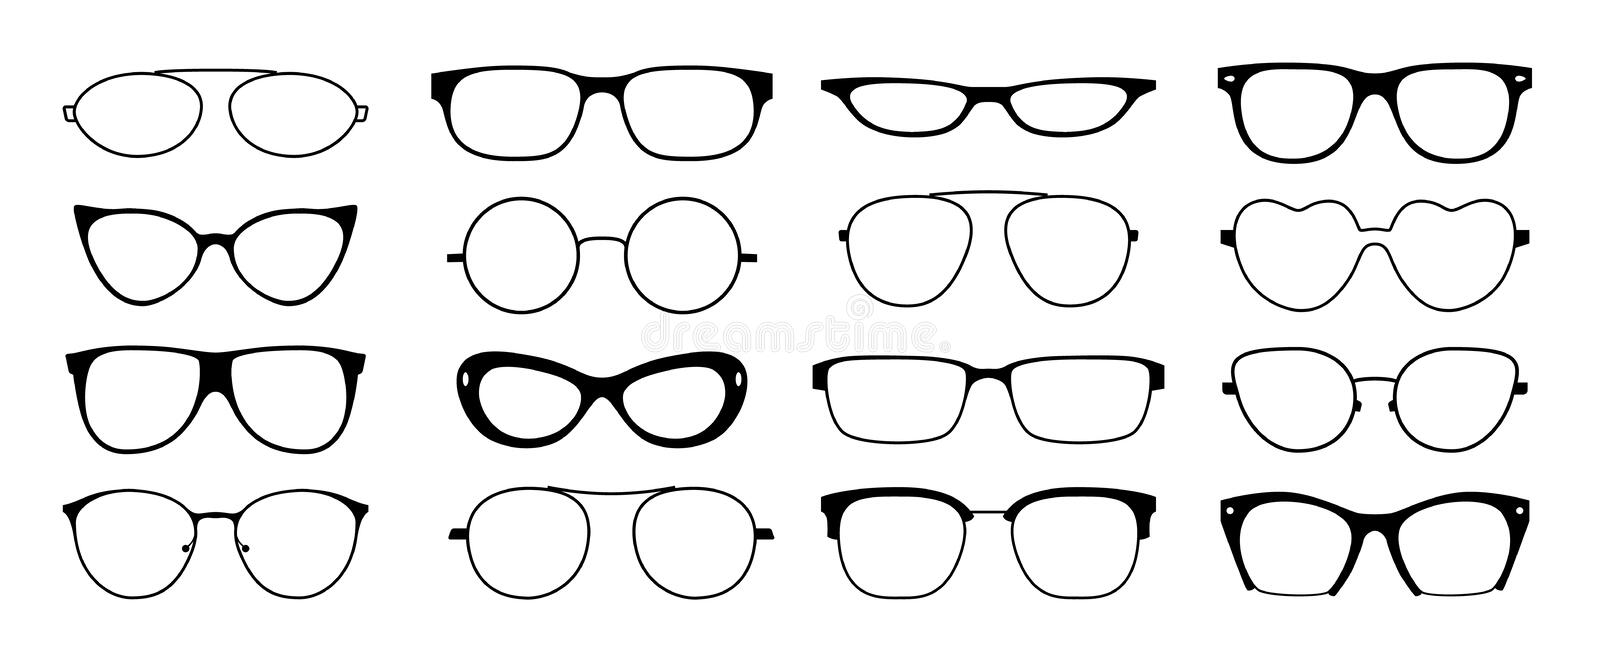 Glasses frames silhouette. Hipster geek sun glasses, optometrist black plastic rims, old fashion style. Vector isolated. Glasses set looking shape frames ocular vector illustration